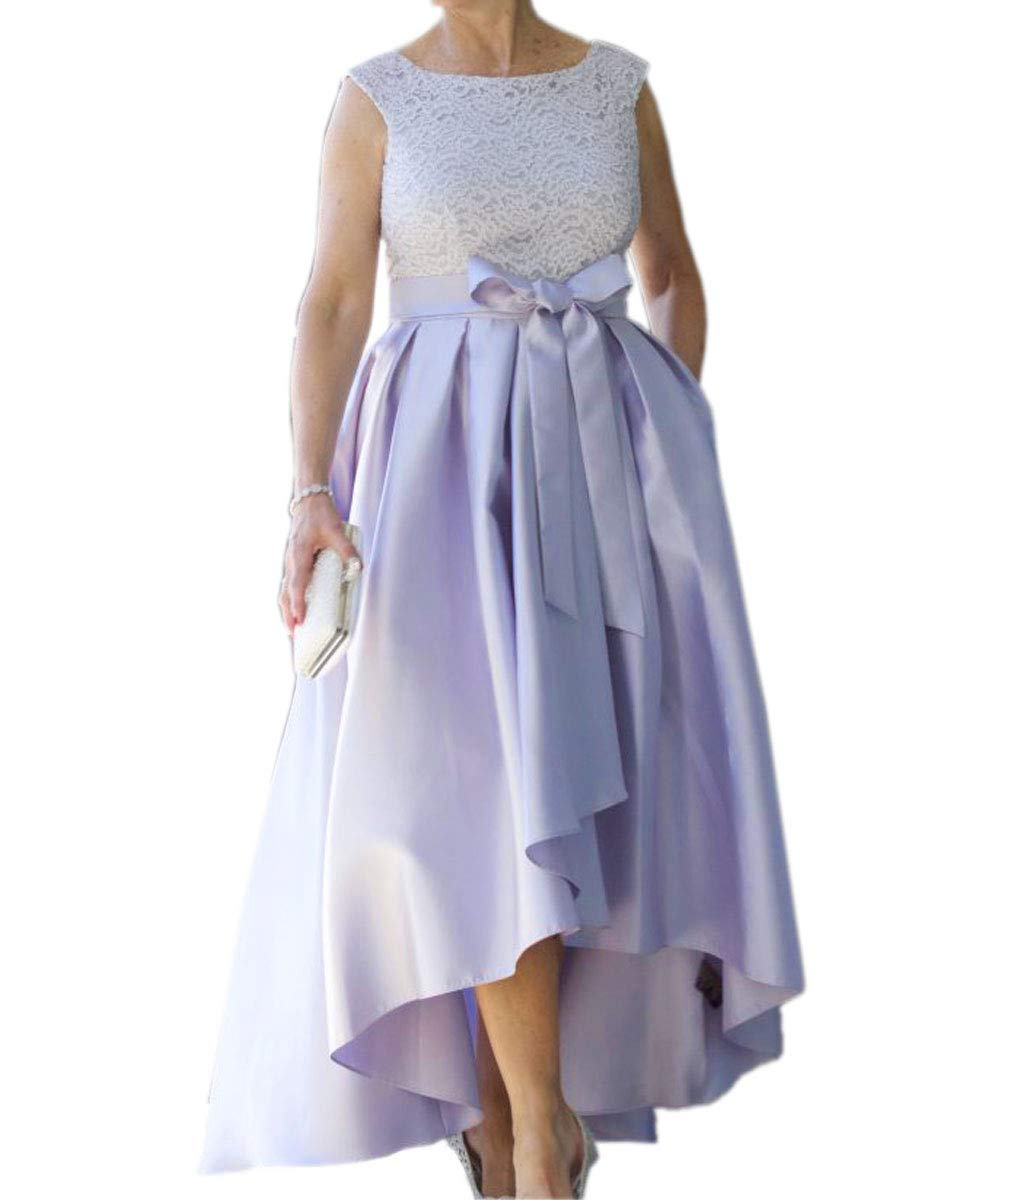 Mauwey Women\'s Plus Size High Low Lace Satin Mother of The Bride Dresses  Bow Belt Prom Bridal Wedding Party Lavender